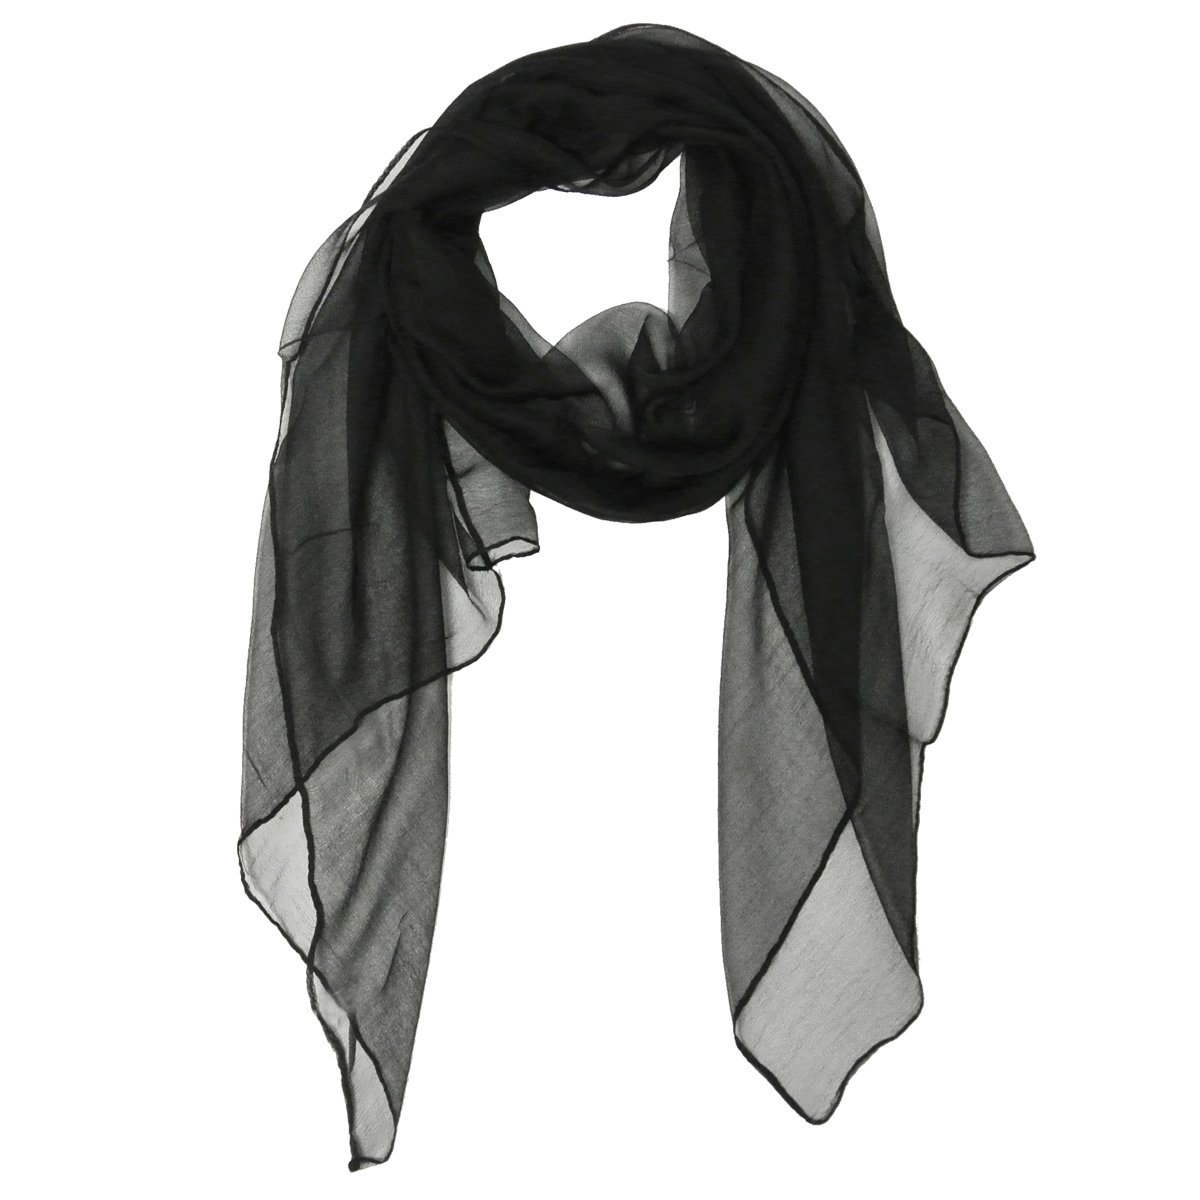 Wrapables Solid Color 100% Silk Long Scarf, Black,One Size by Wrapables